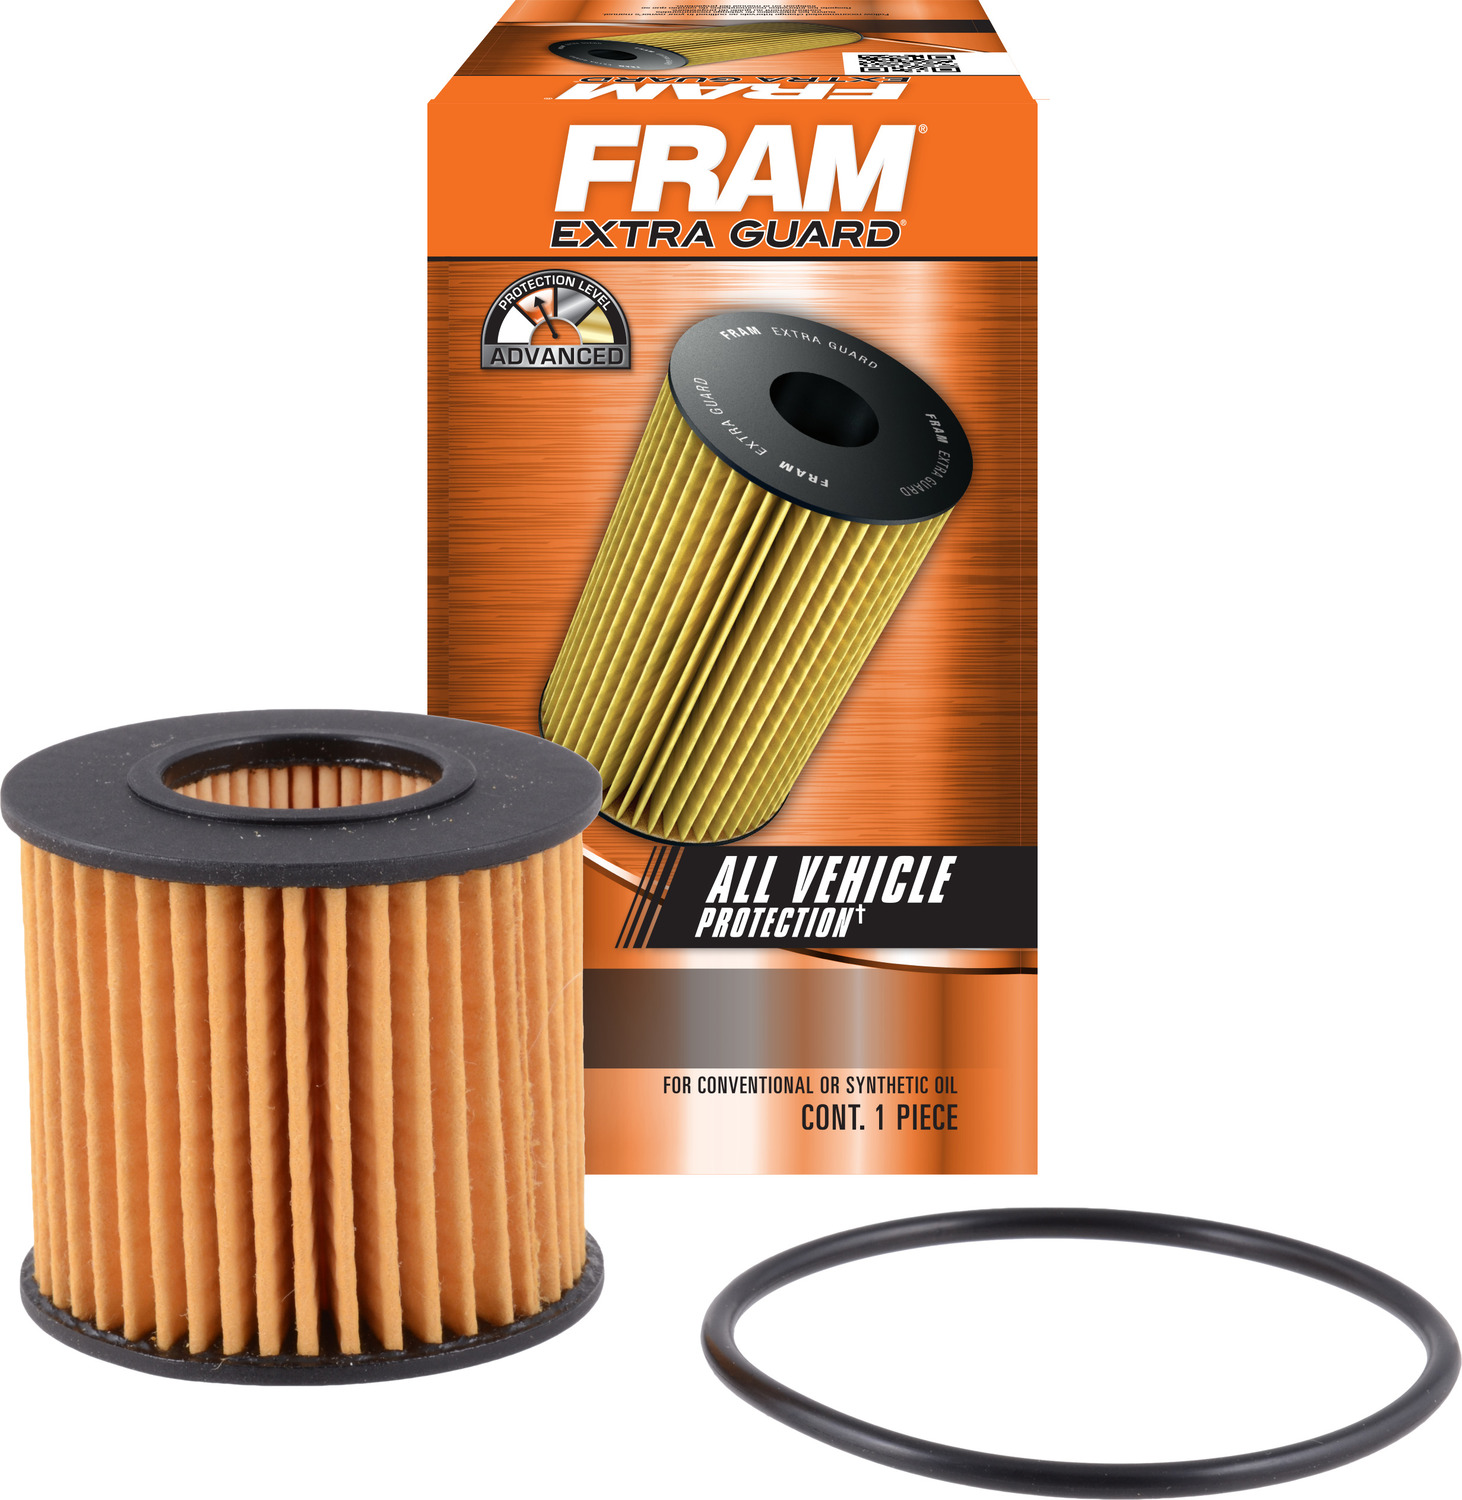 FRAM Extra Guard Oil Filter, CH10358